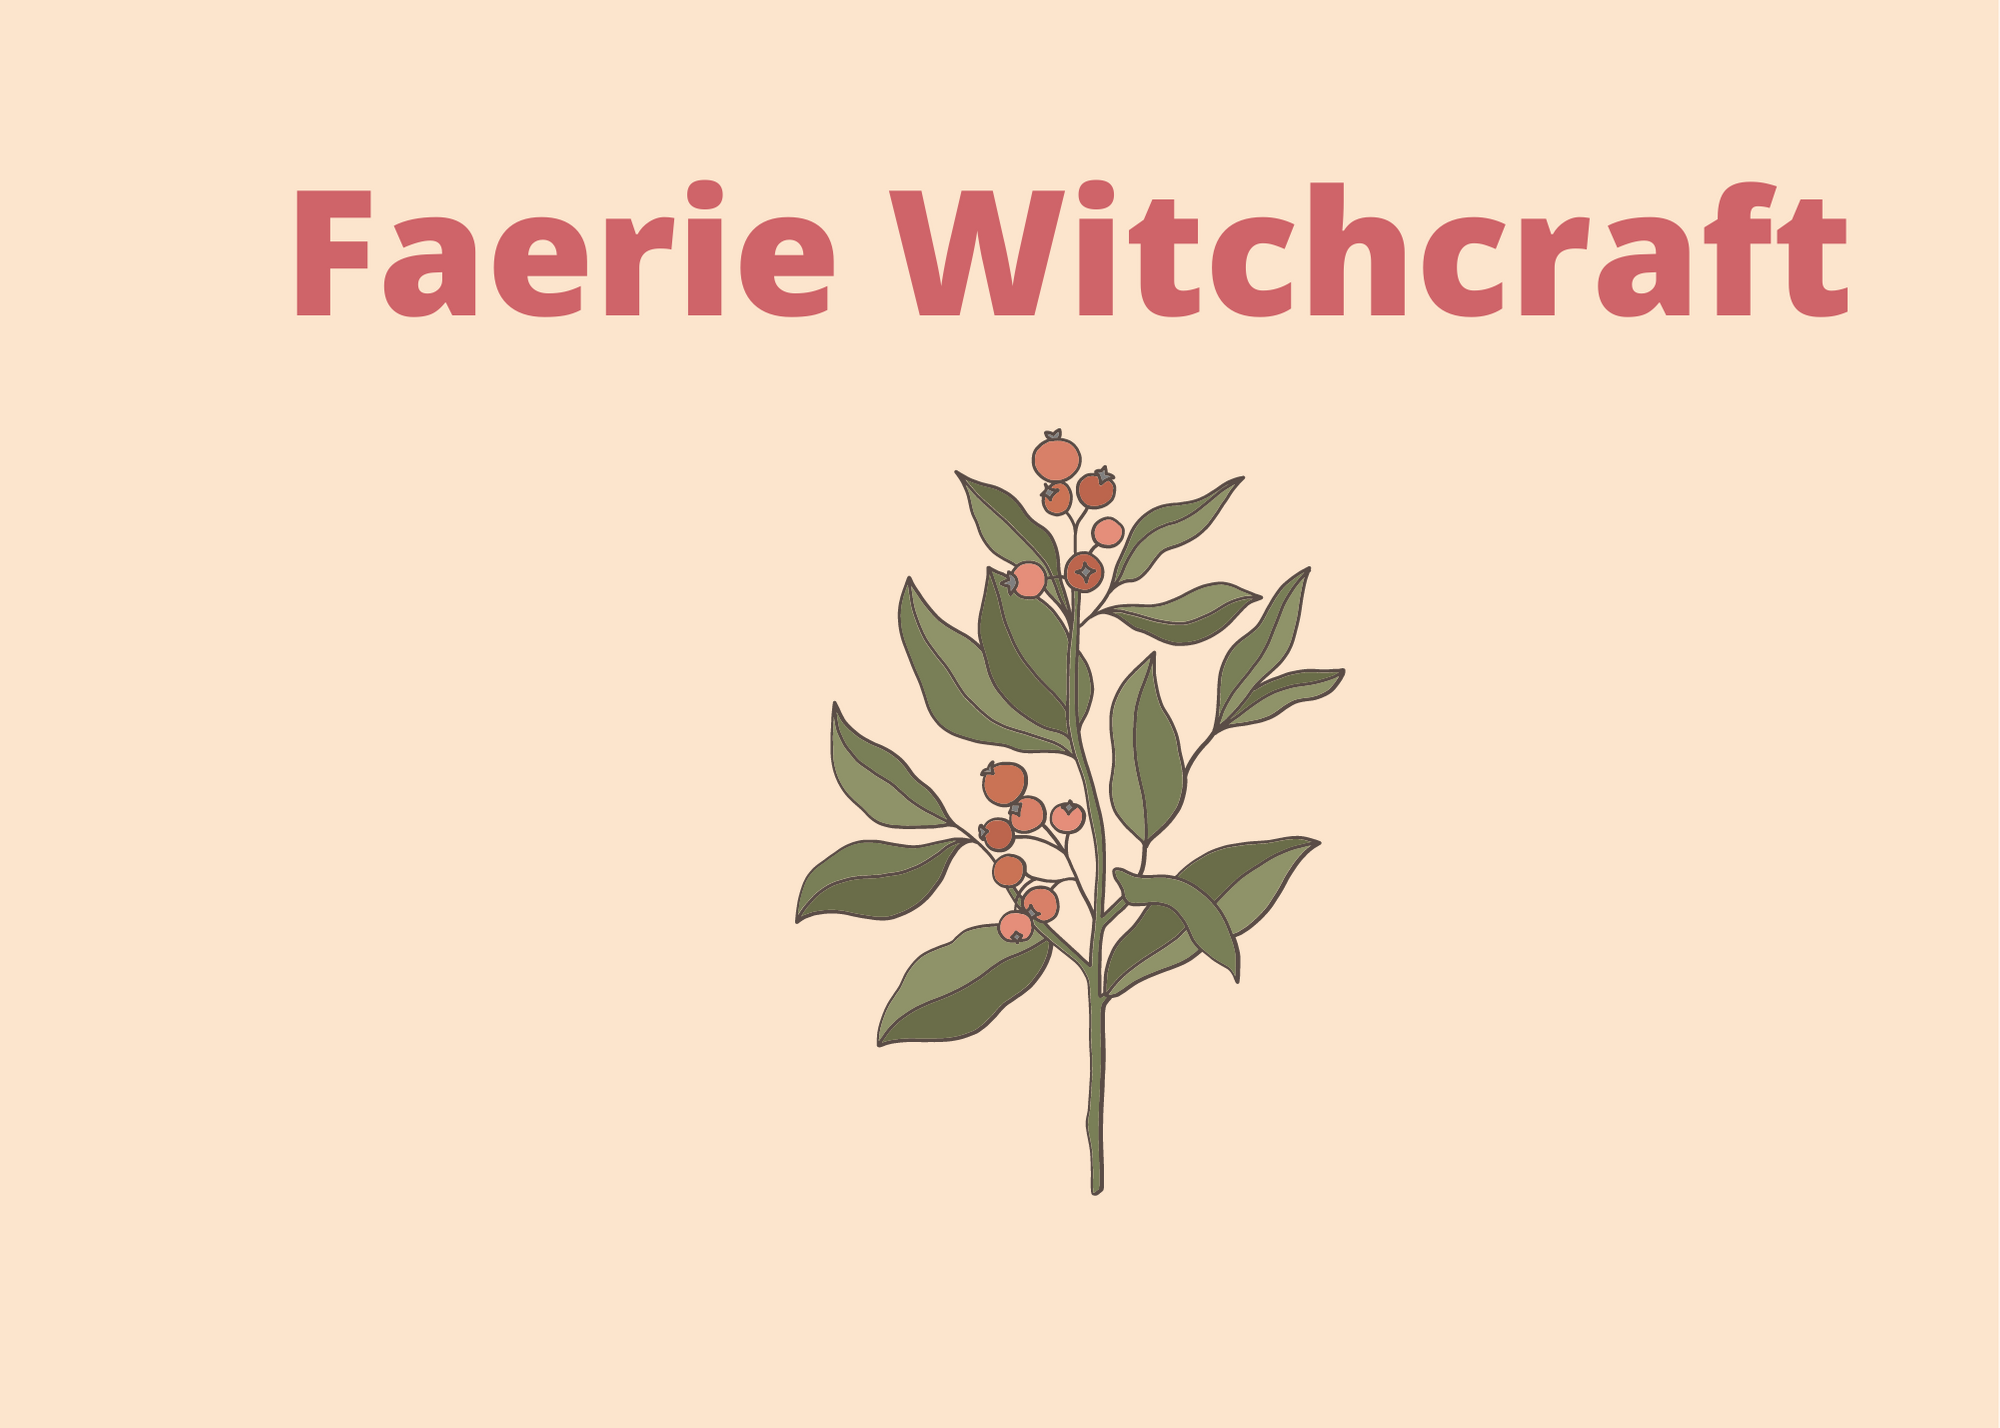 Working with the fae and elementals, fairy magic, wishing magic,